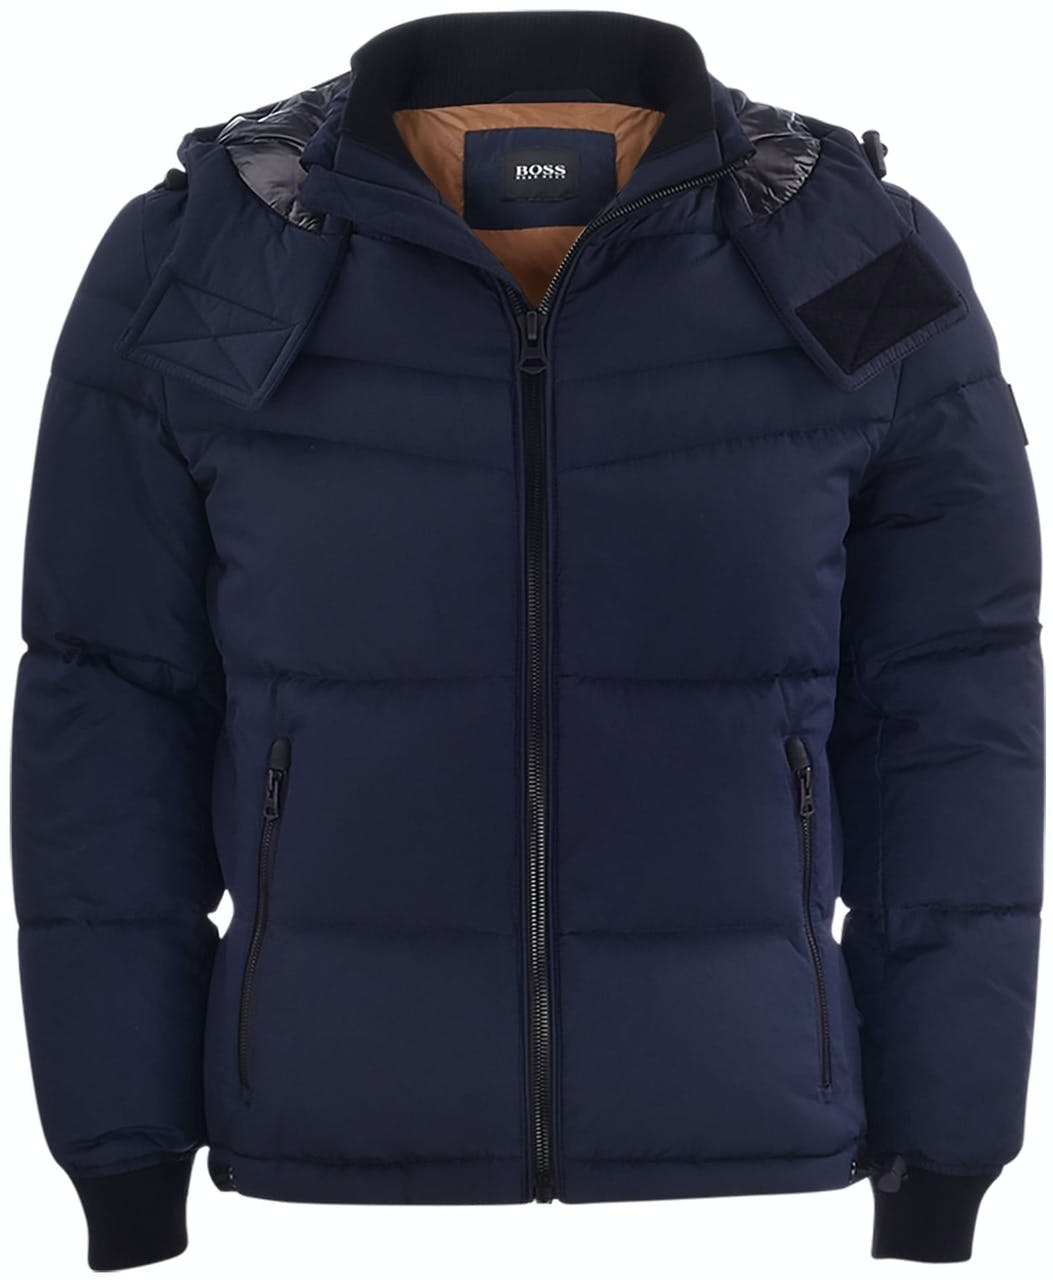 Daunenjacke - Regular Fit - Olooh2